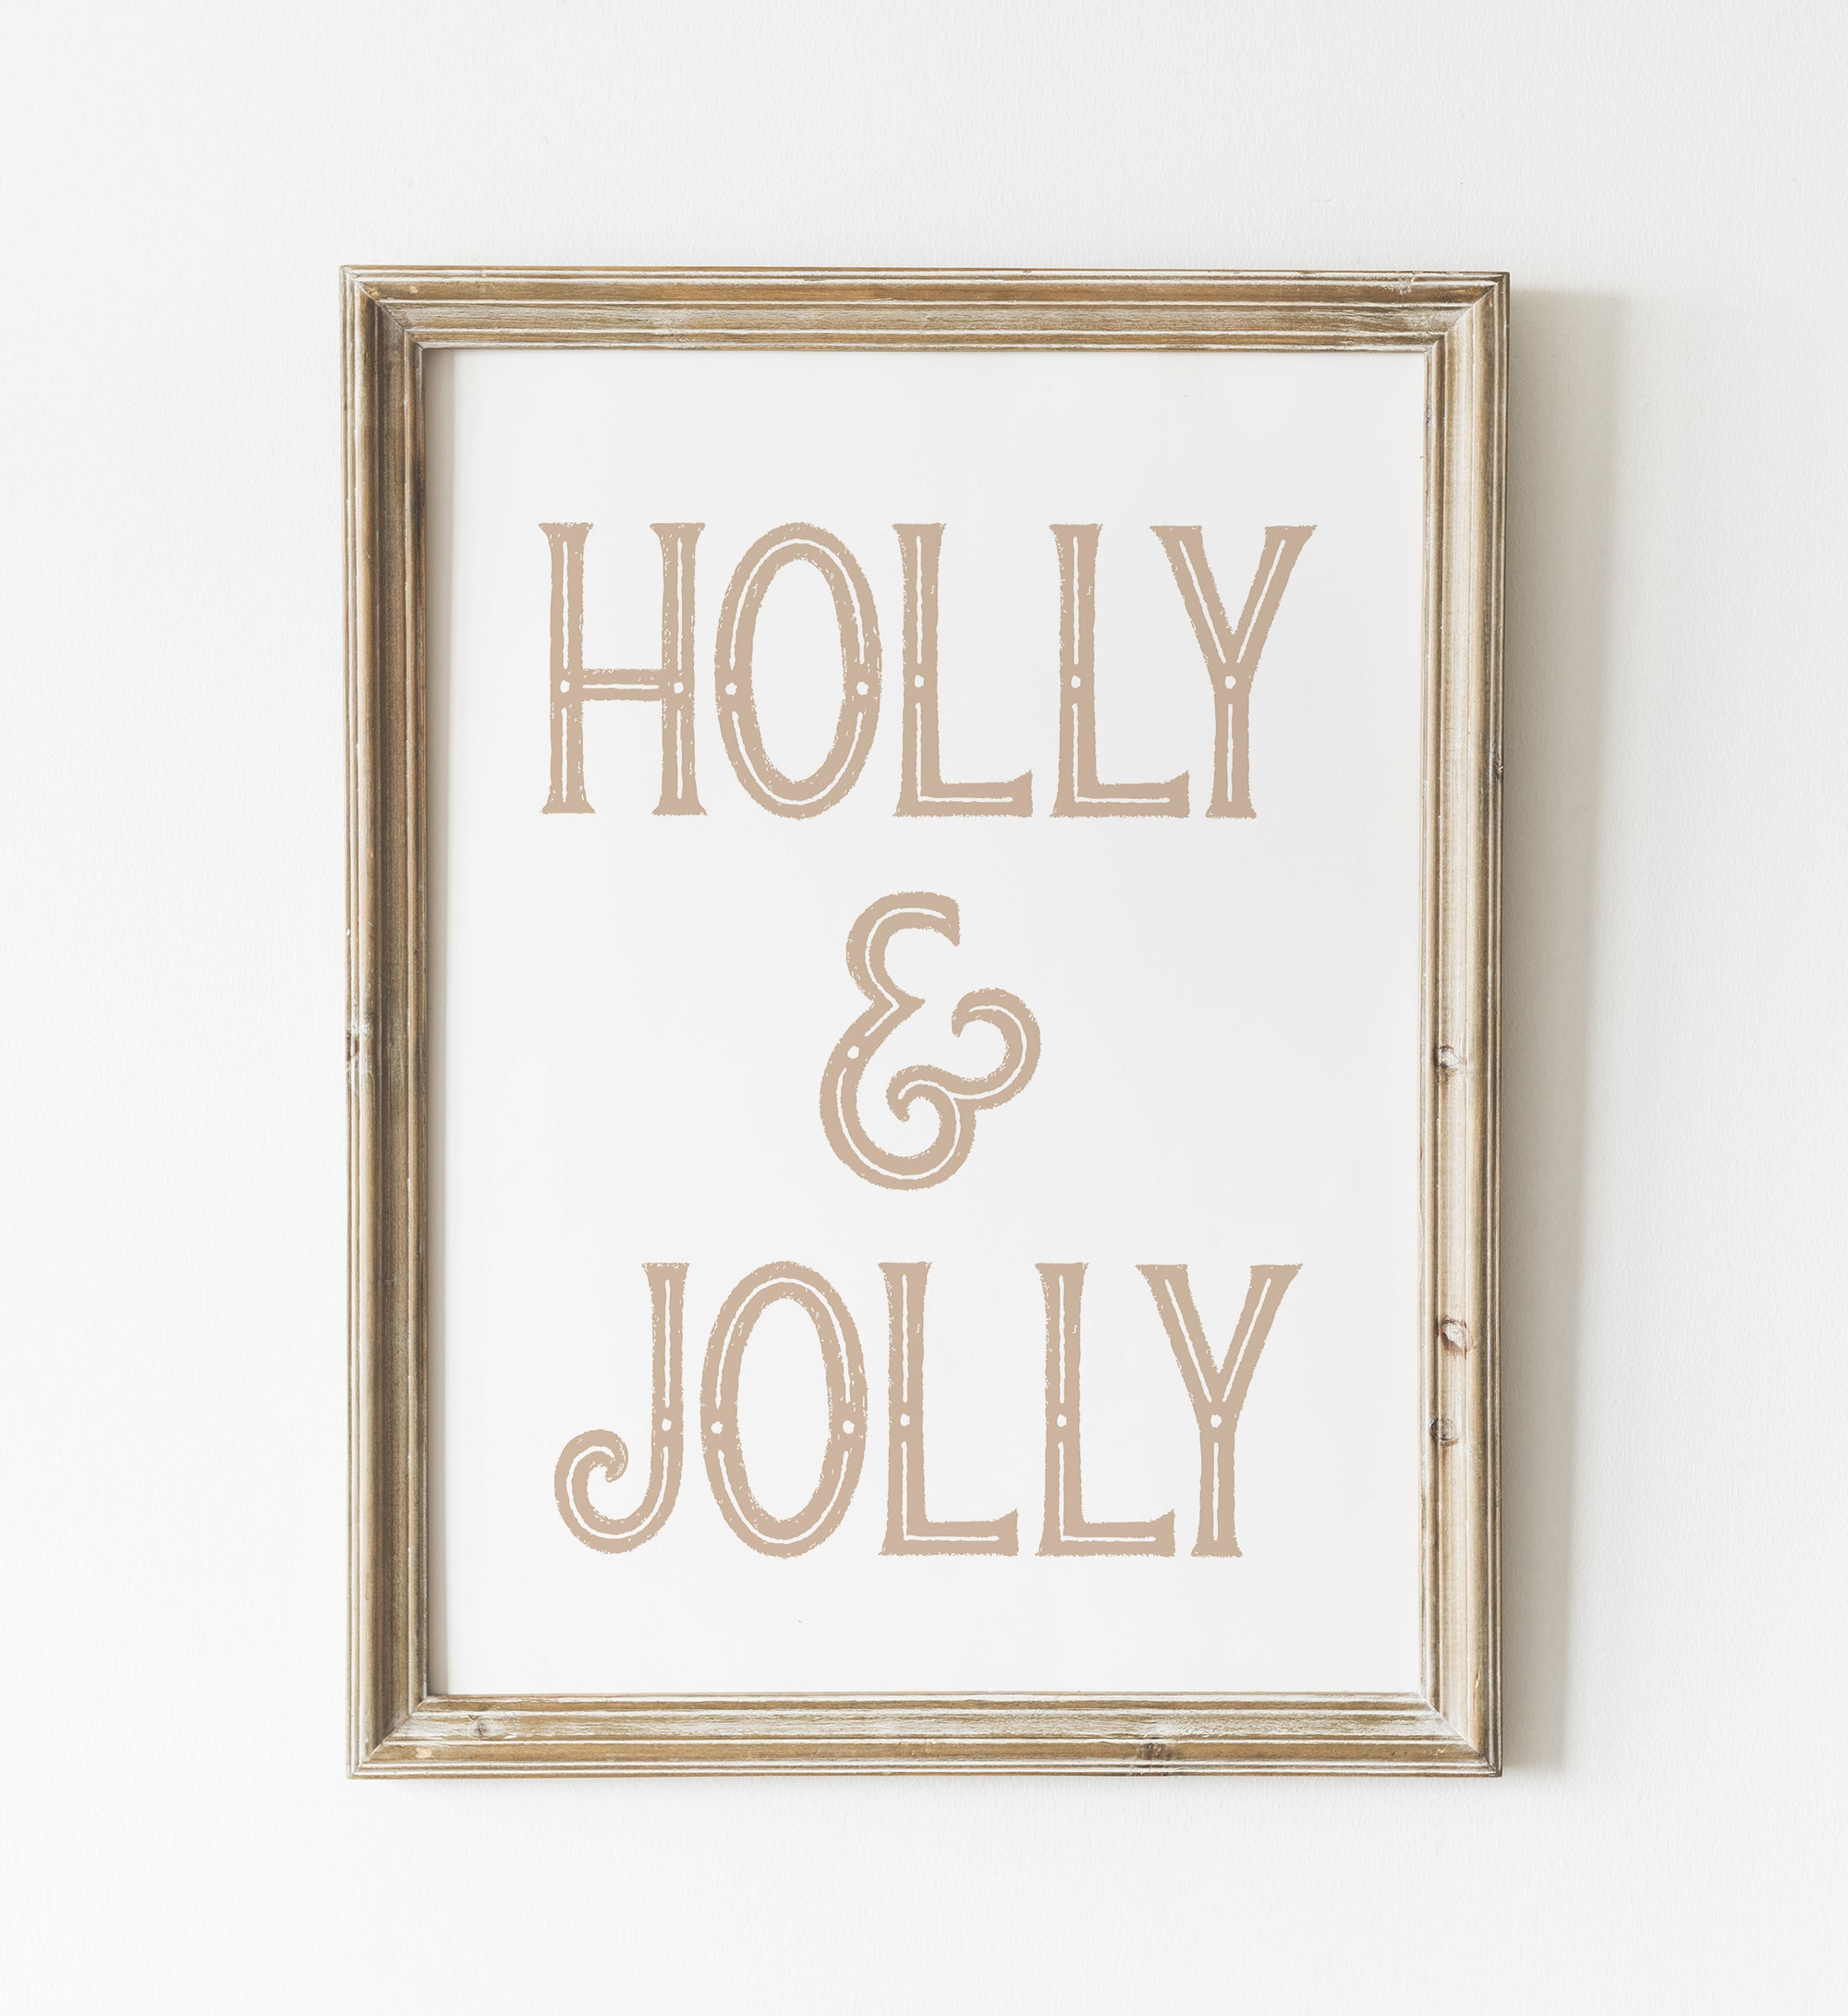 Gold Holly & Jolly Print